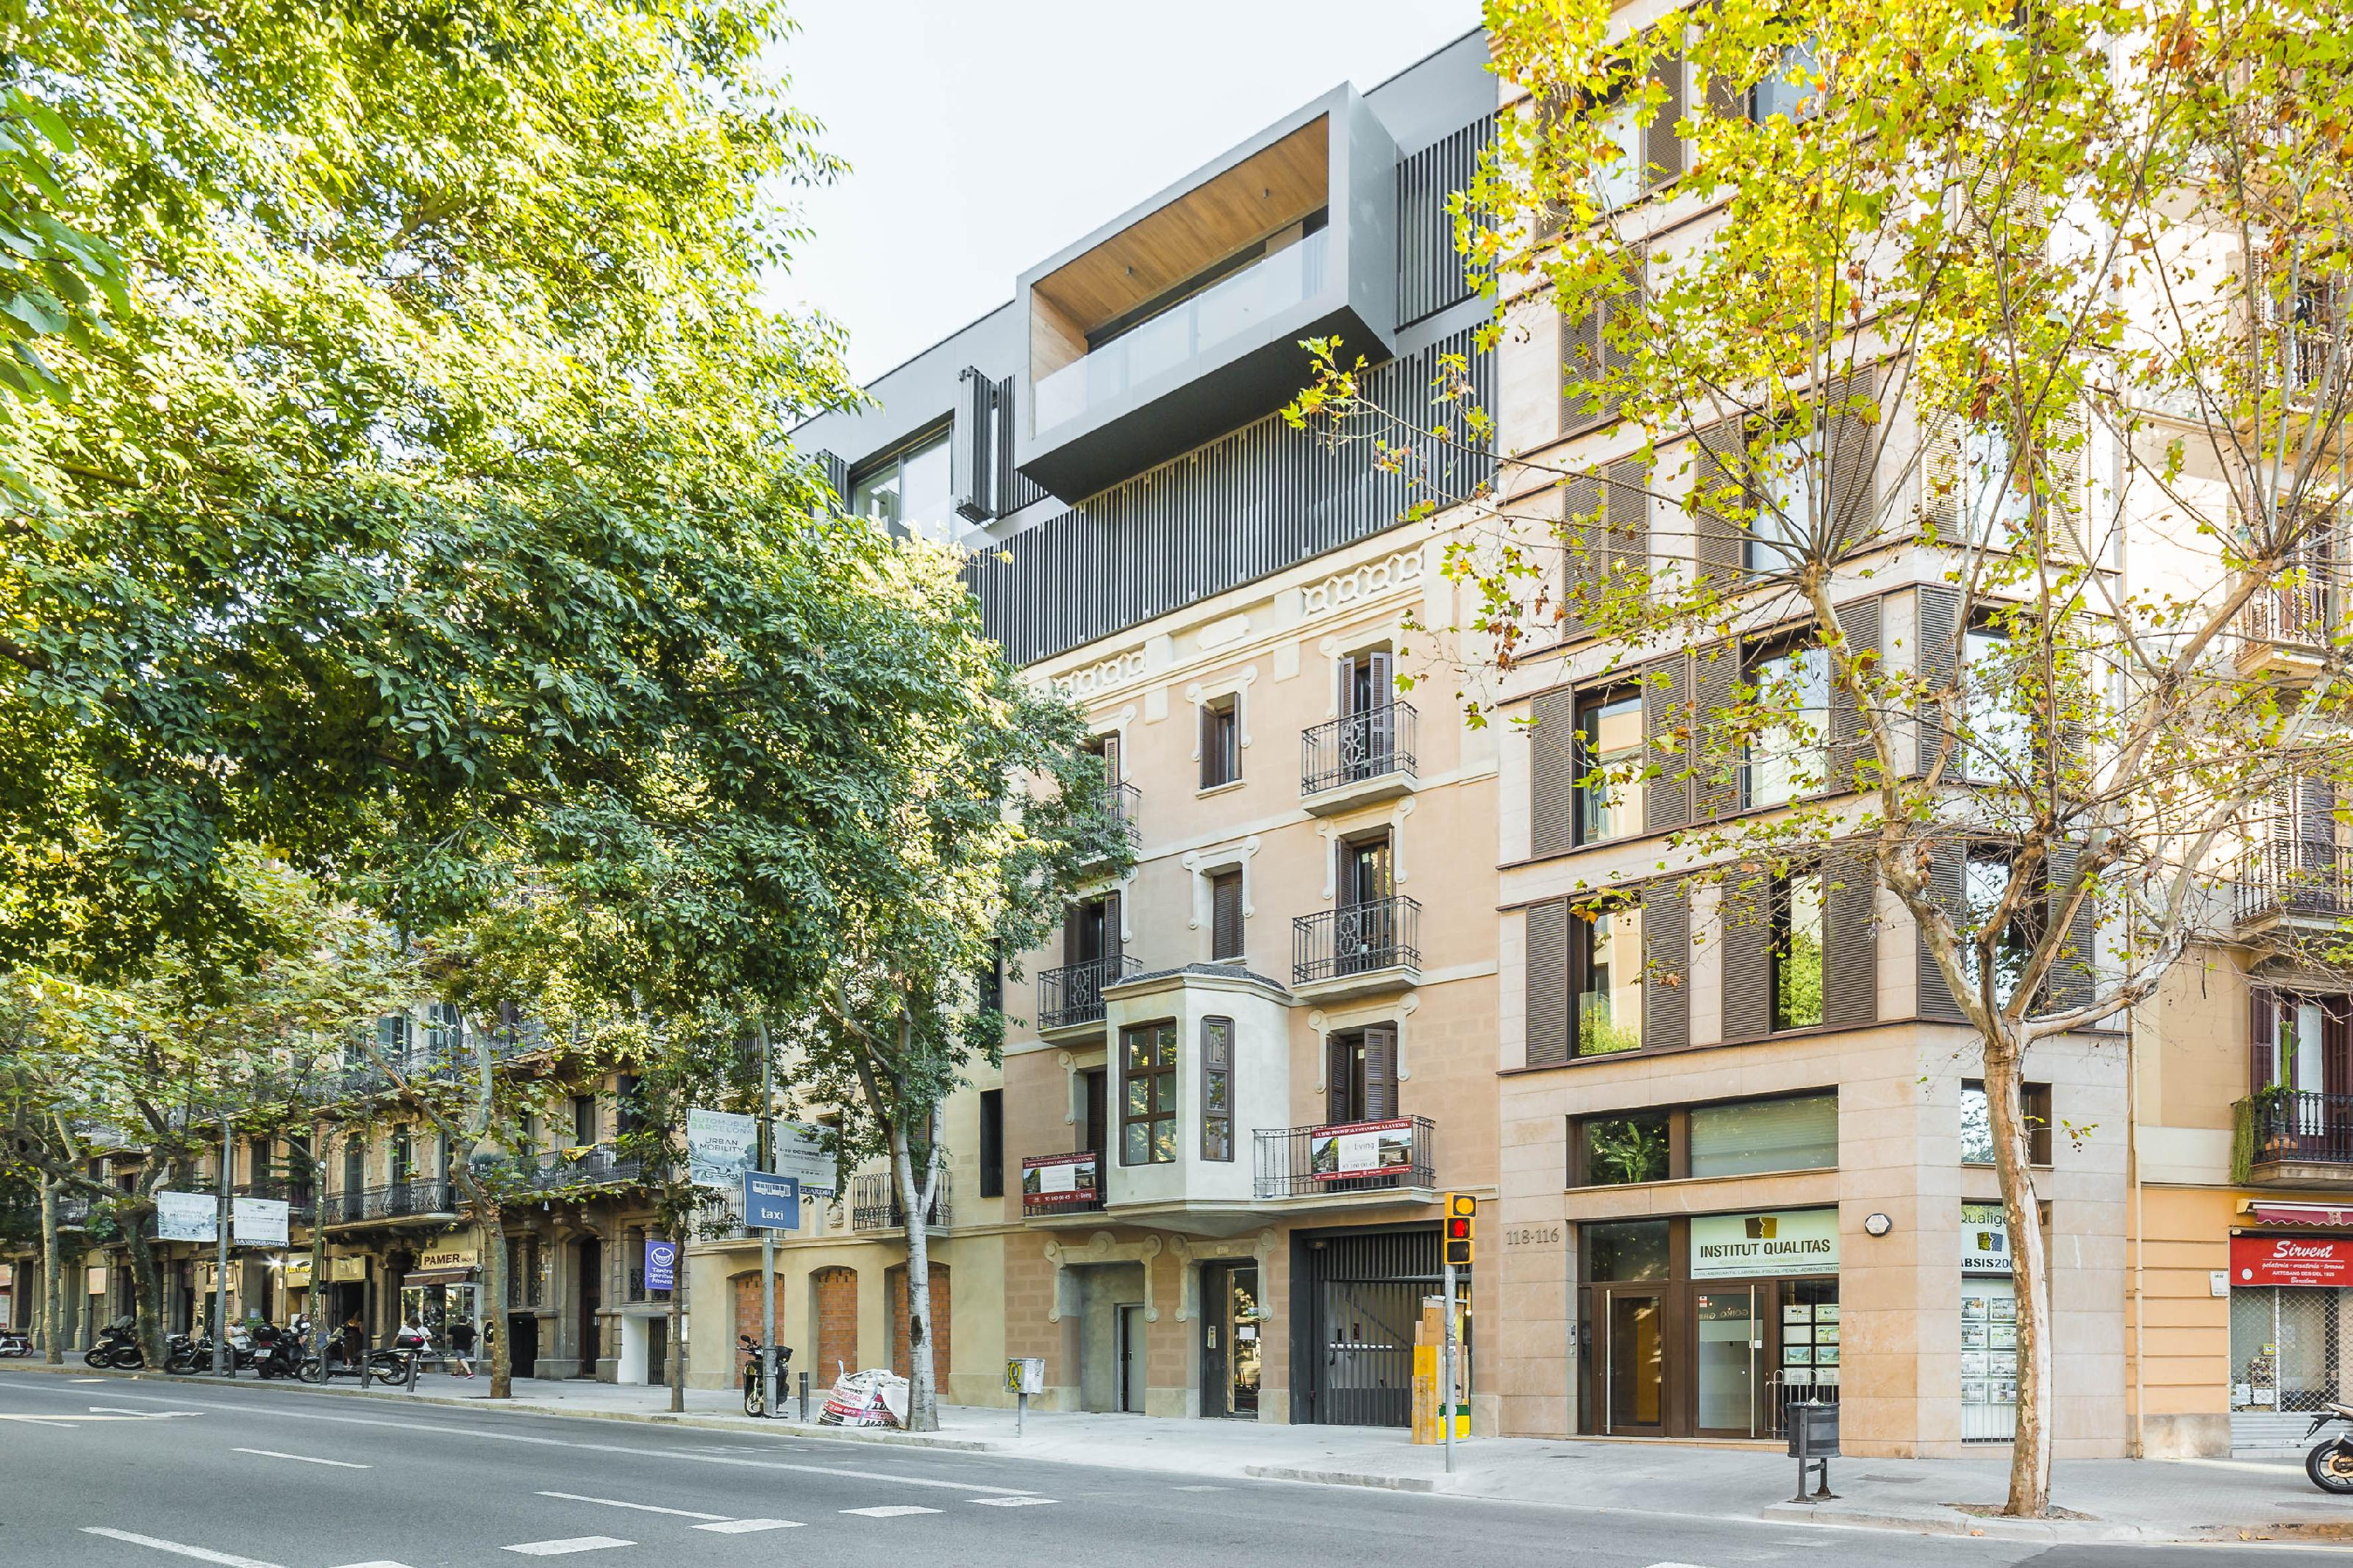 182176 Apartment for sale in Eixample, Old Left Eixample 37